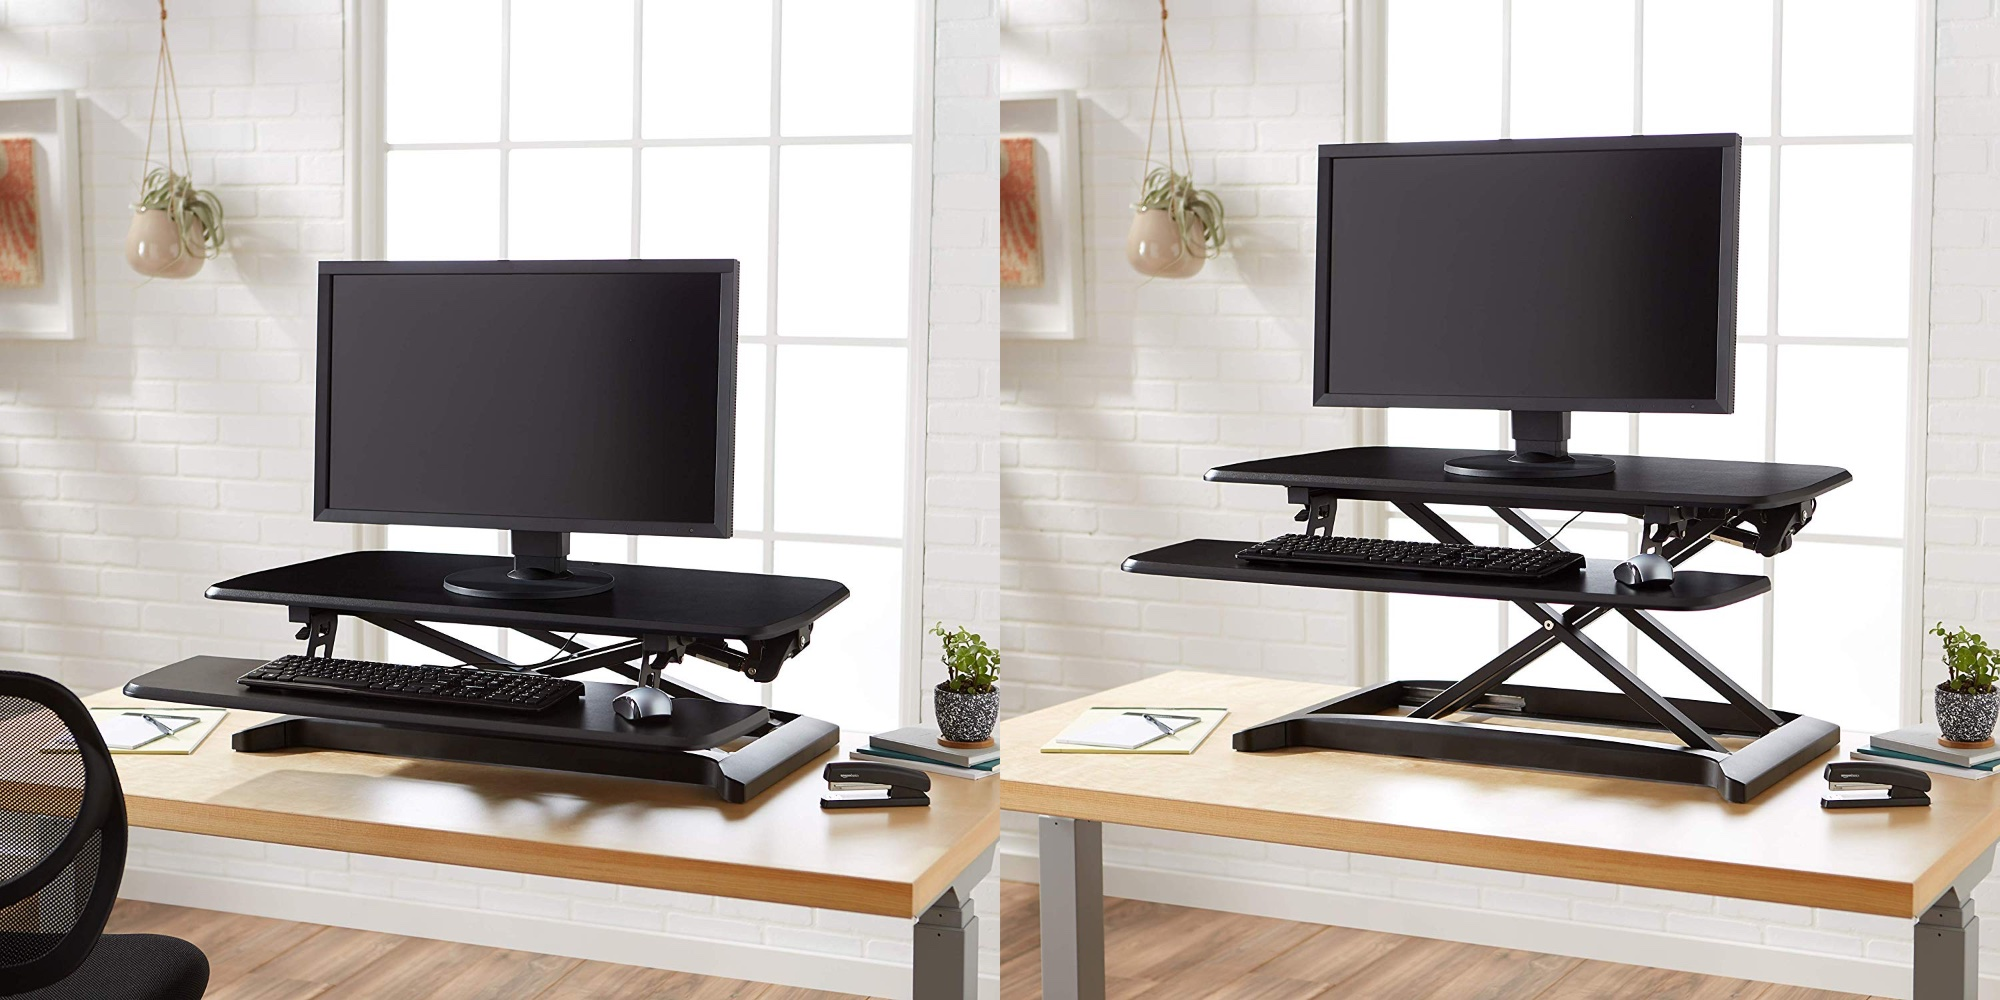 Convert your workspace into a standing desk with AmazonBasics' $104 attachment (Reg. $249)